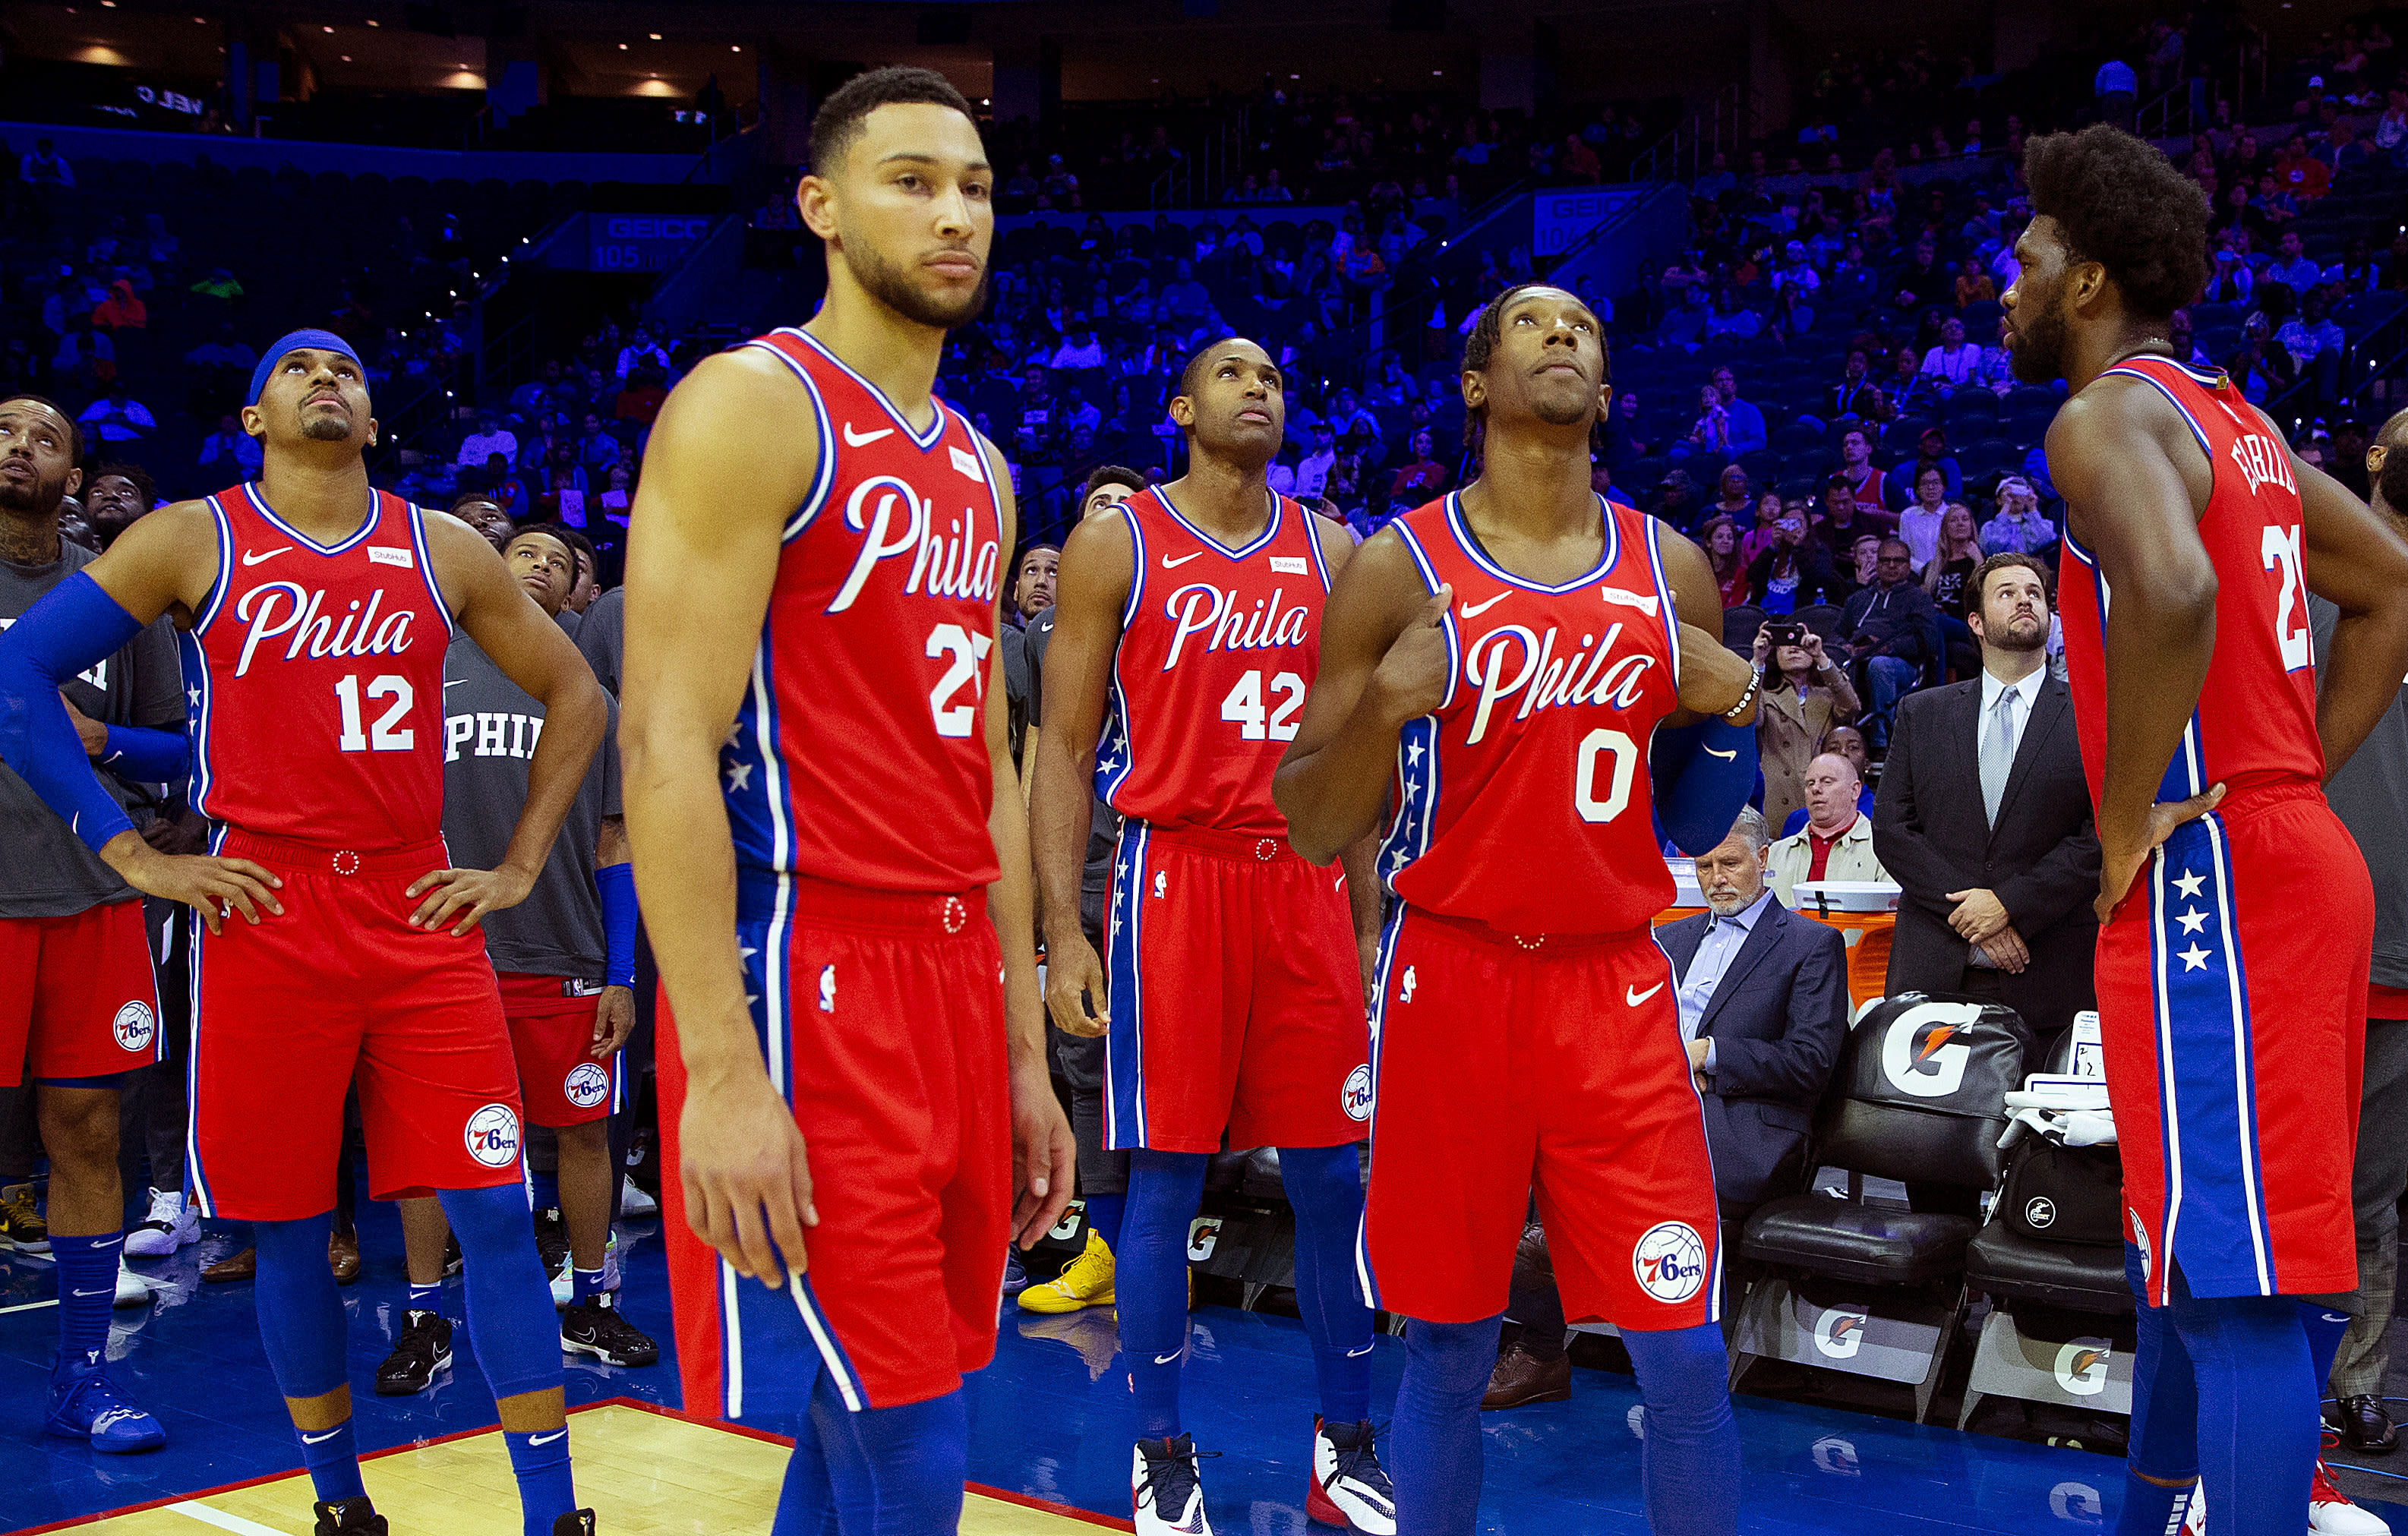 Chemistry is amiss on the Philadelphia 76ers